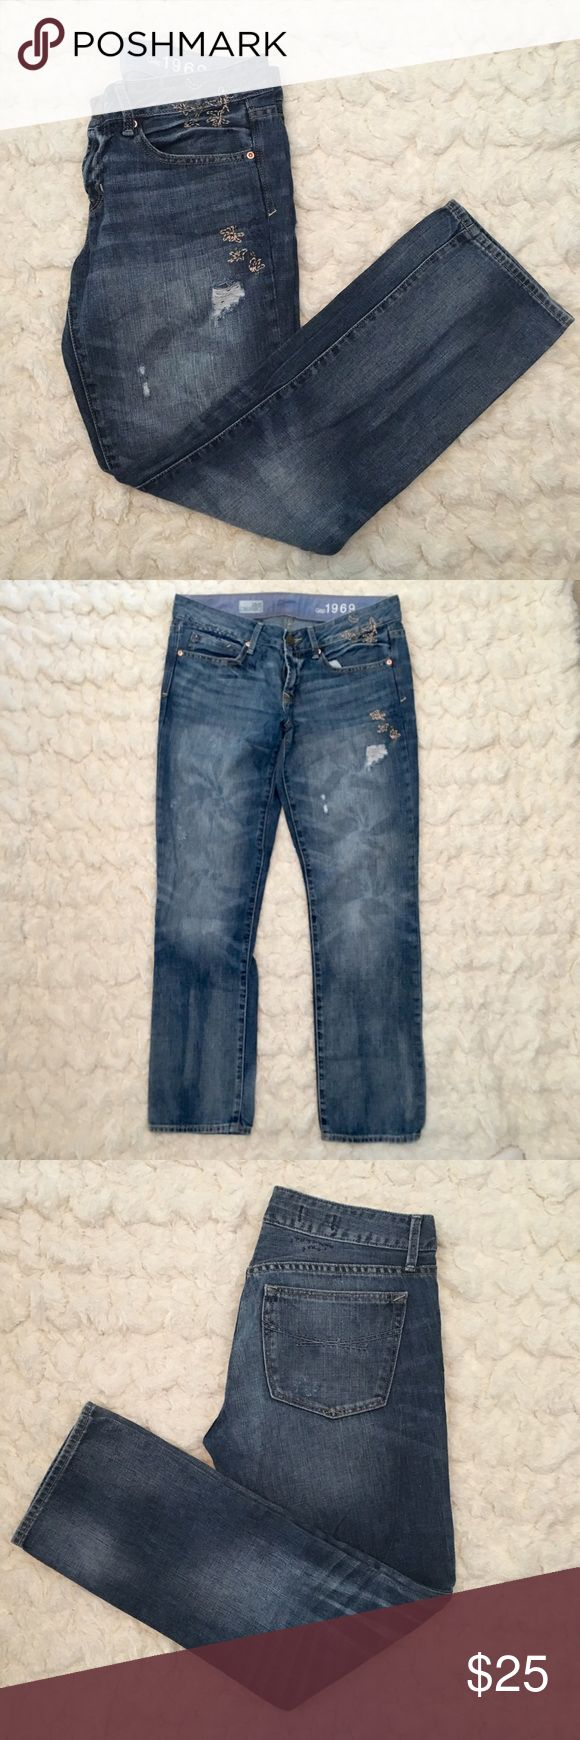 "Gap ""real straight"" Women's Ankle Jeans Gap Women's ""real straight"" ankle jeans. Slight distressing and embroidery details. Great condition worn less than 3 times! Size 6 GAP Jeans Straight Leg"